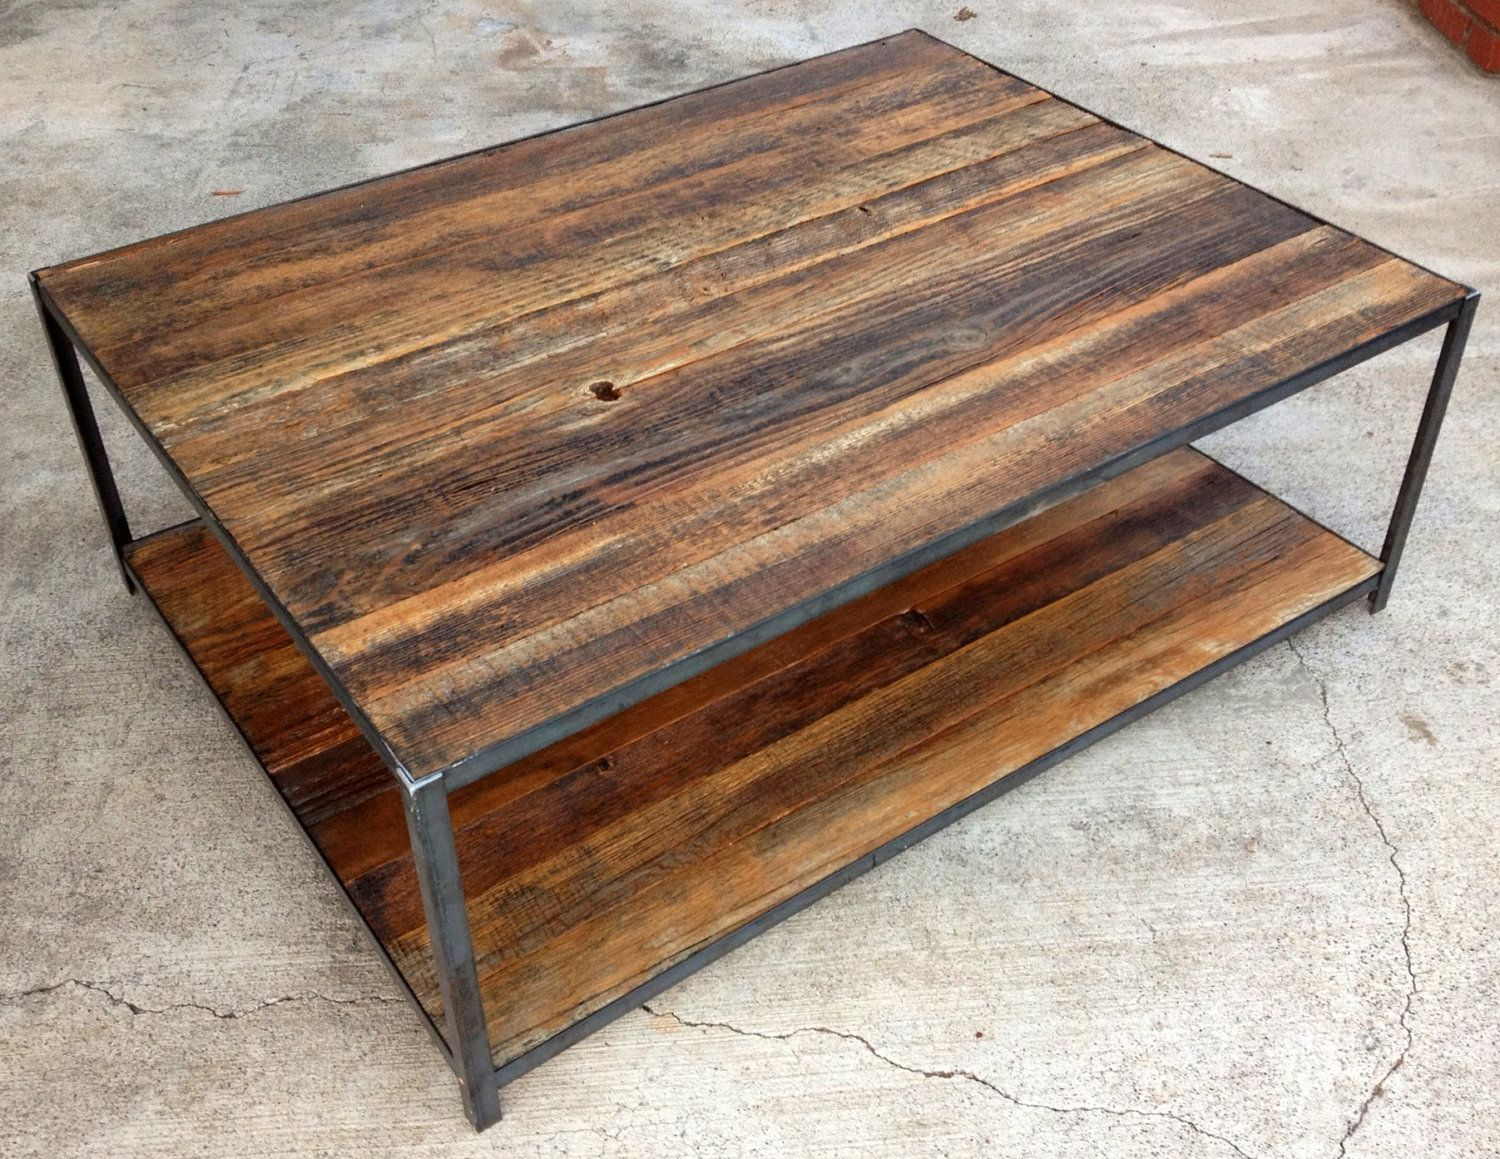 Reclaimed wood and angle iron coffee table 40000 via etsy reclaimed wood and angle iron coffee table 40000 via etsy geotapseo Image collections